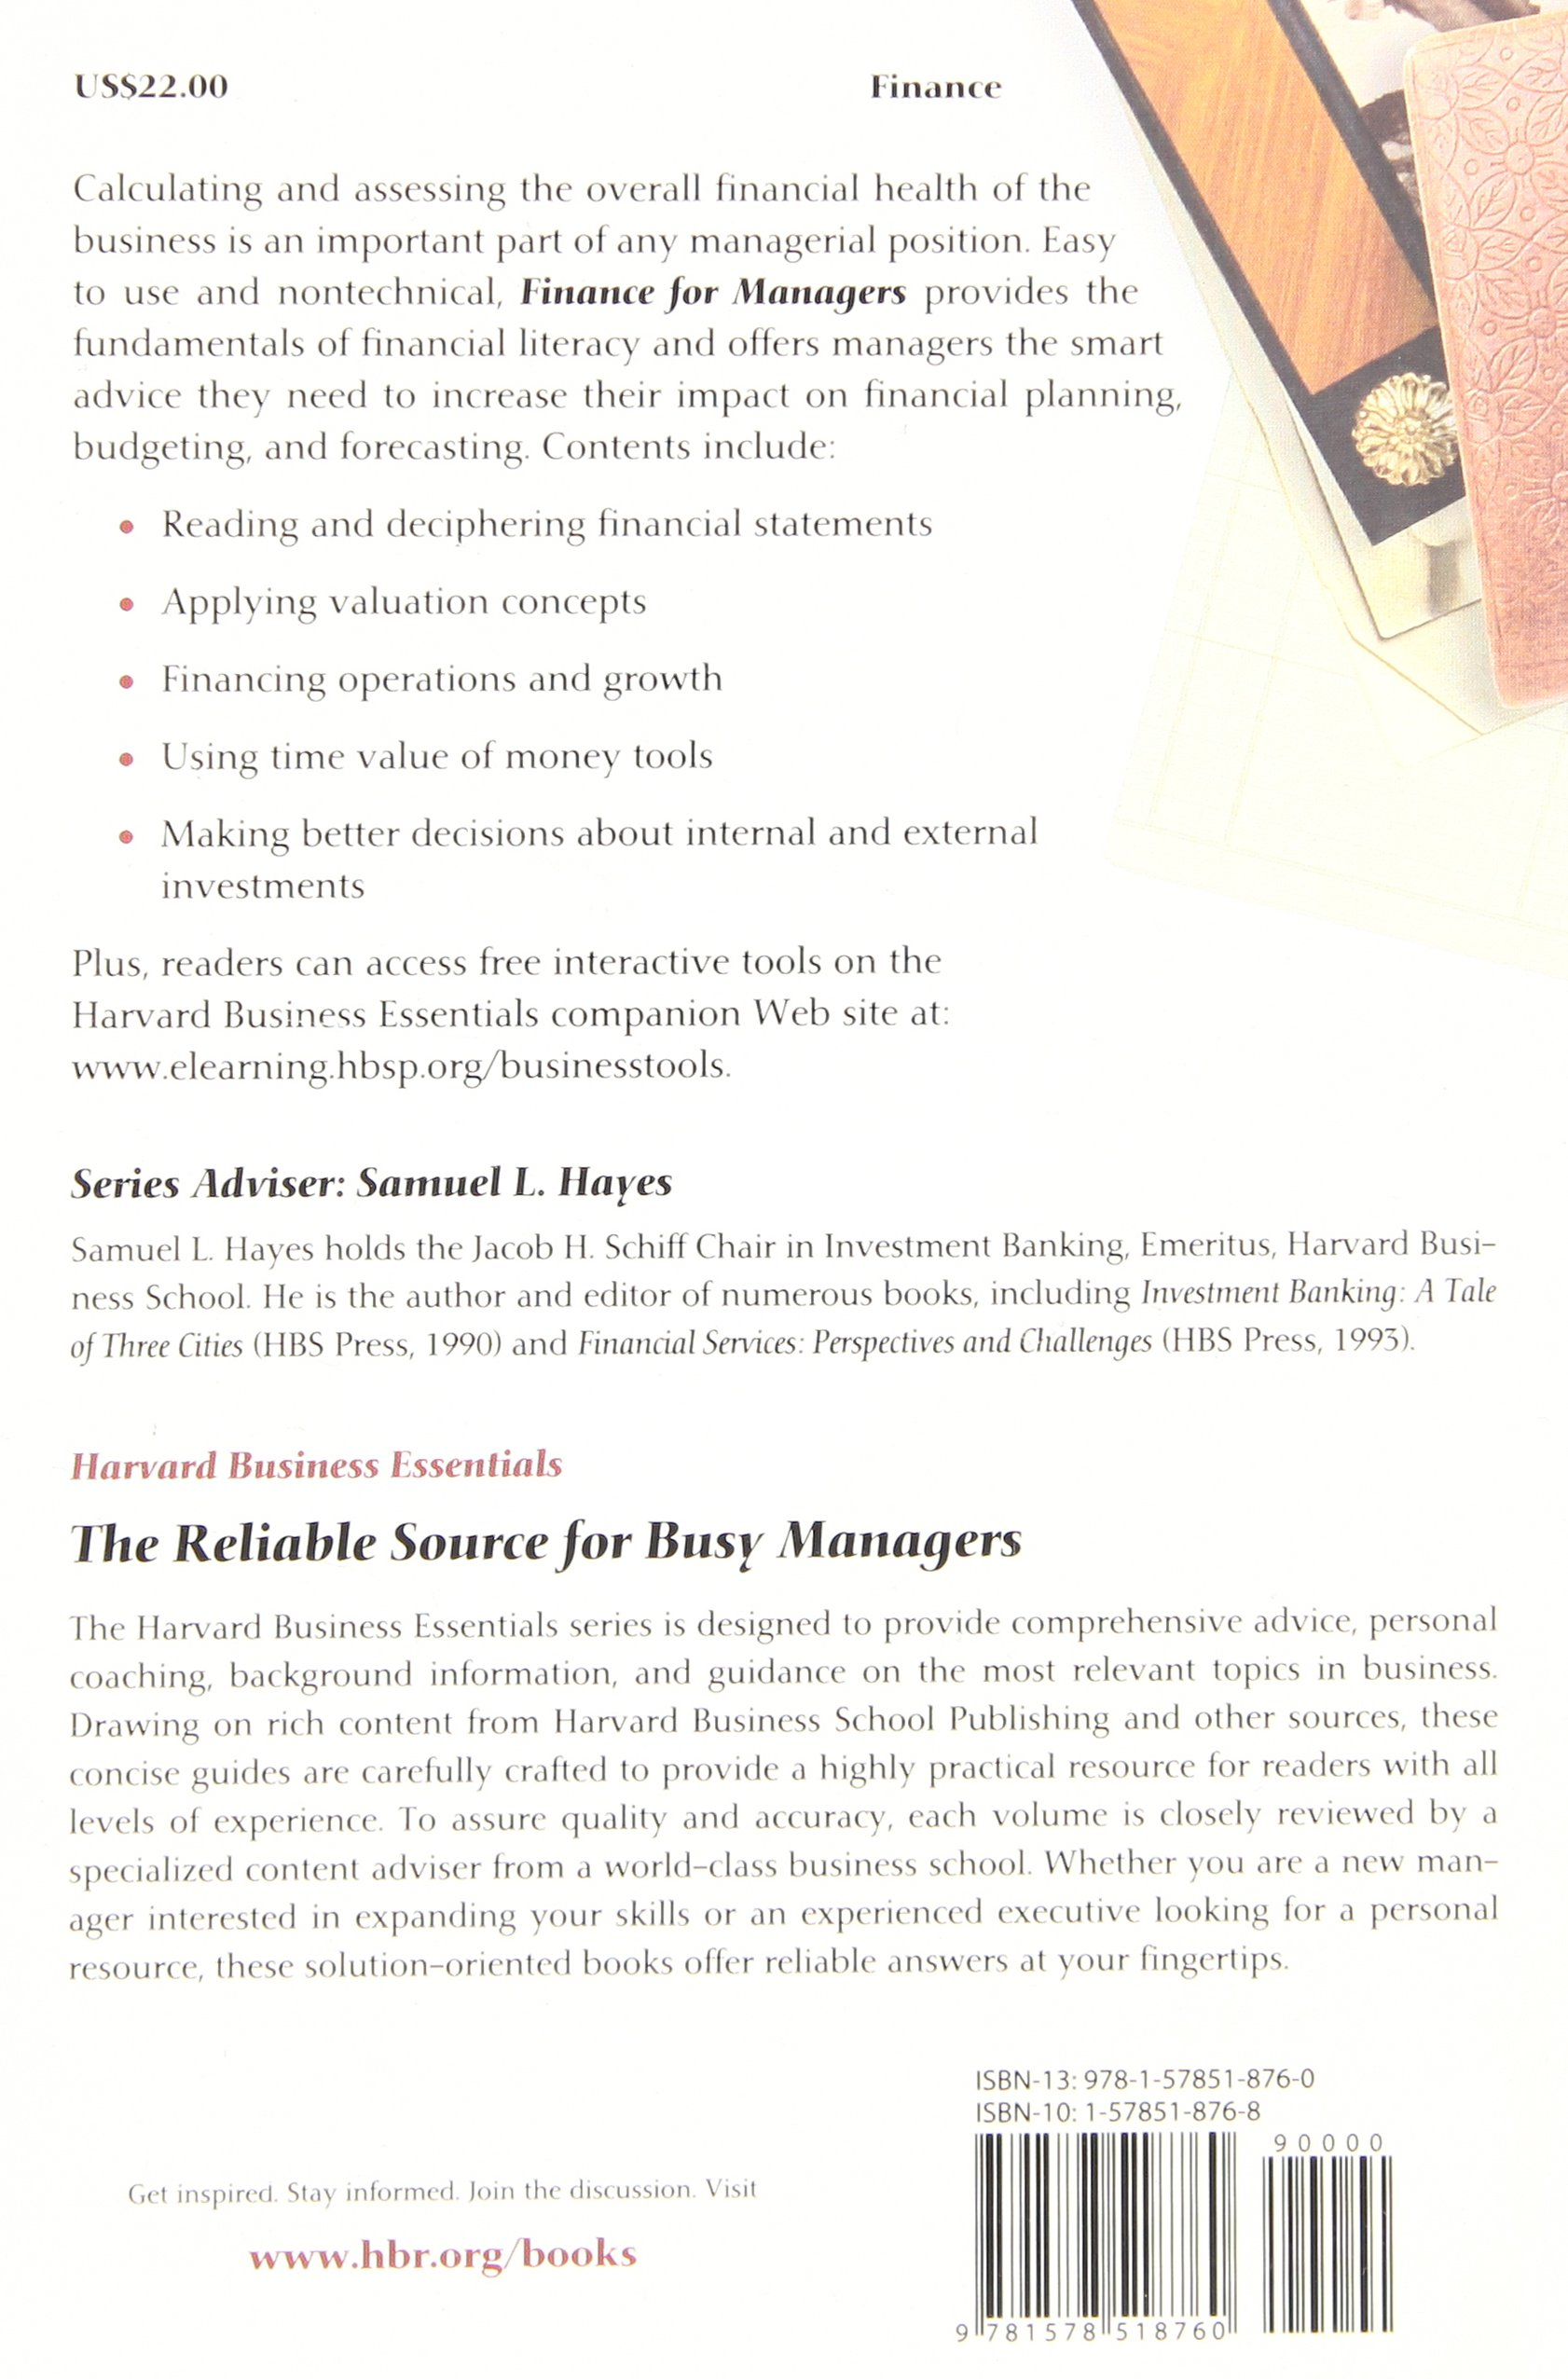 Finance for Managers (Harvard Business Essentials)